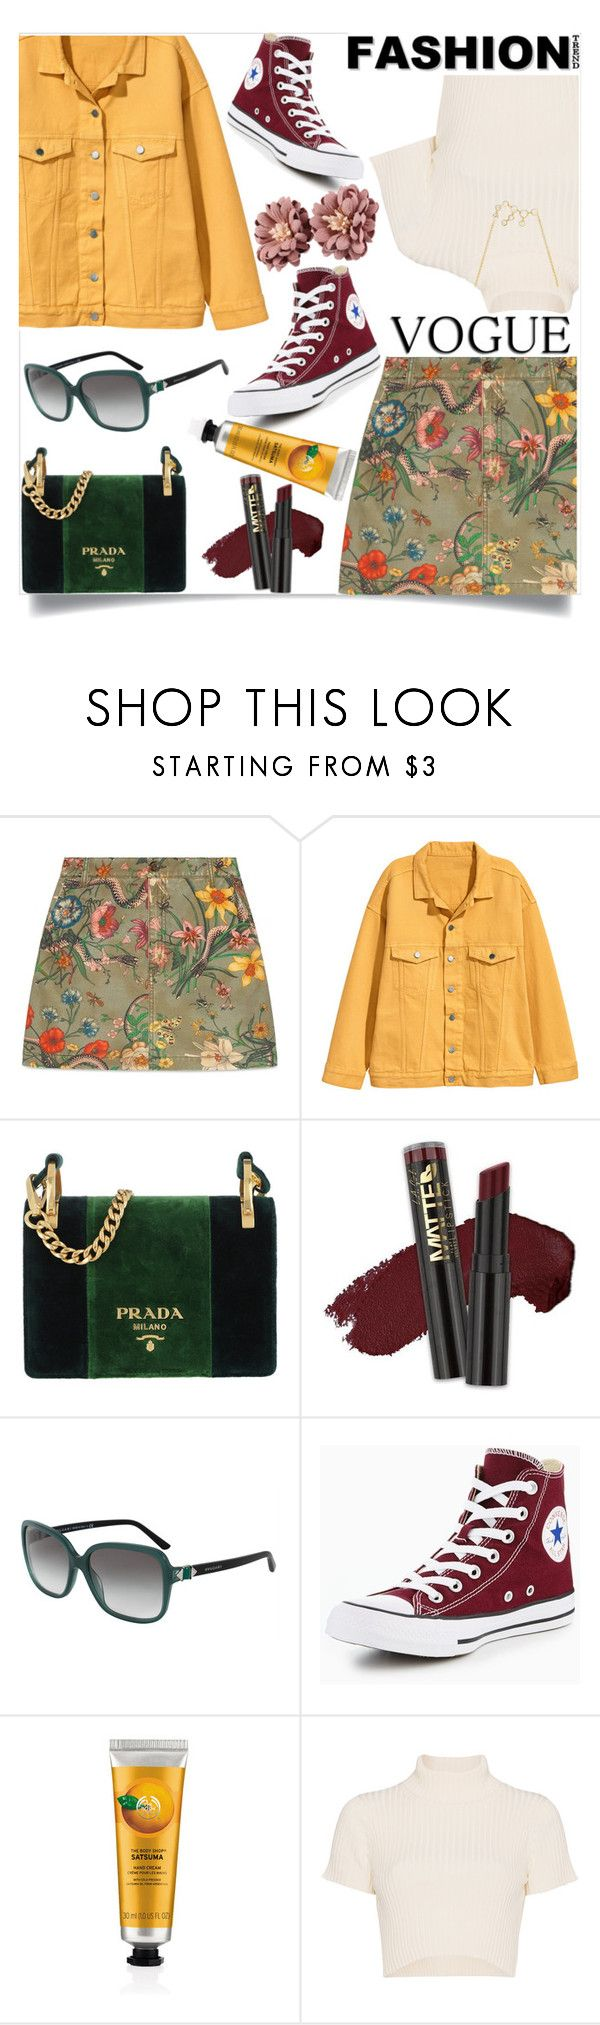 """""""Untitled #37"""" by jenniferhale2004 ❤ liked on Polyvore featuring Gucci, Prada, L.A. Girl, Bulgari, Converse and Staud"""